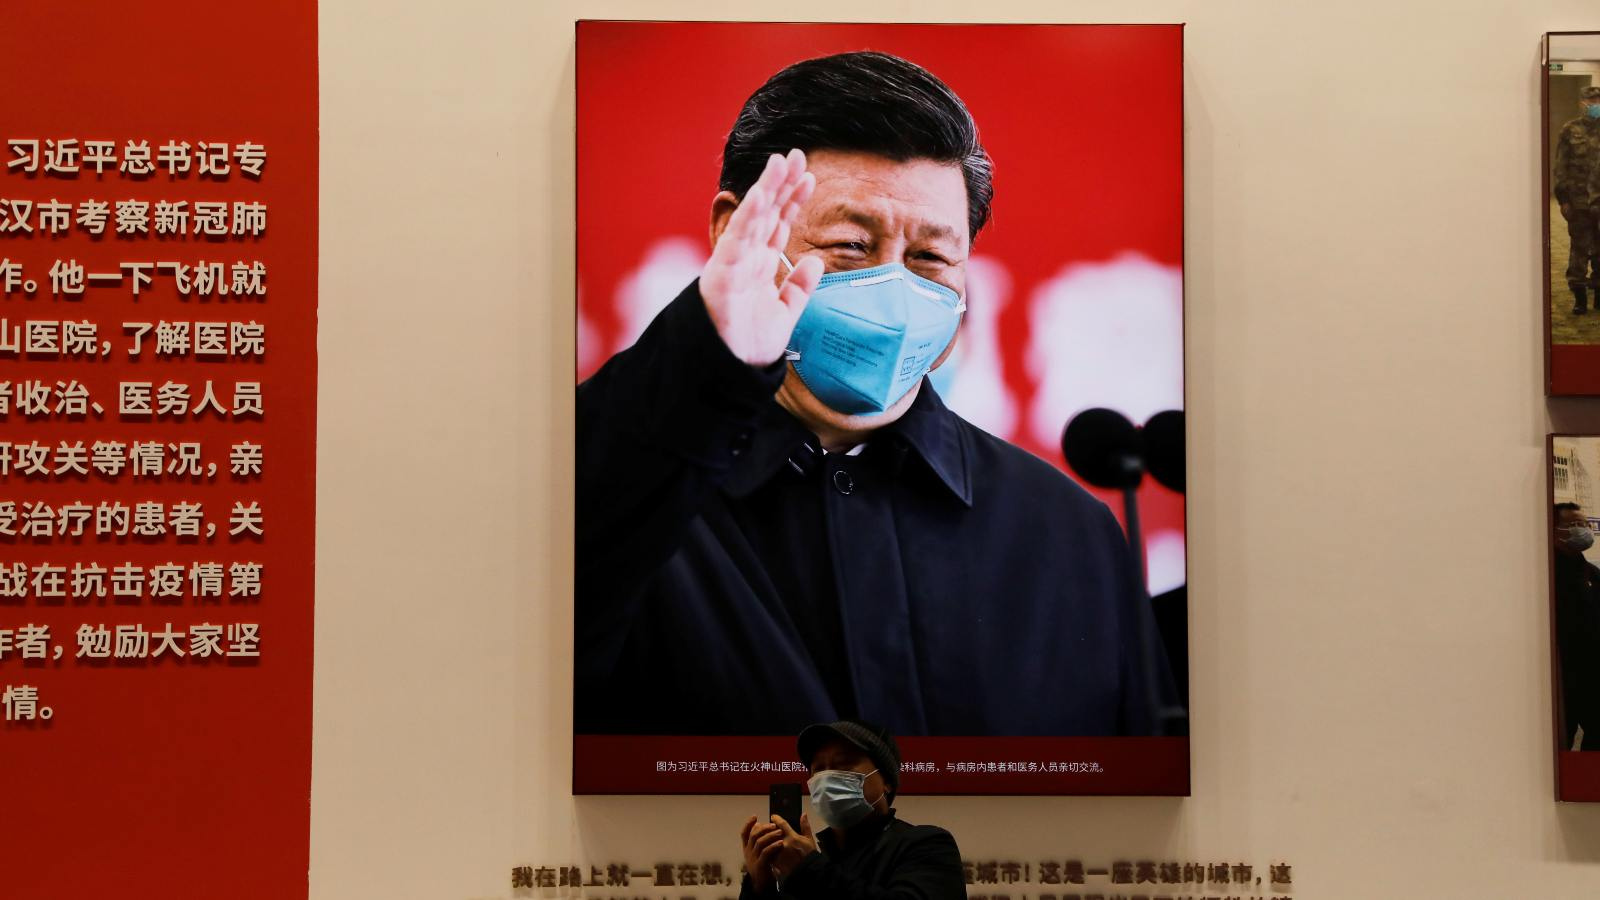 Photo: A visitor stands near an image of Chinese President Xi Jinping during an exhibition on the fight against the coronavirus disease (COVID-19) outbreak, at Wuhan Parlor Convention Center that previously served as a makeshift hospital for COVID-19 patients in Wuhan, Hubei province, China December 31, 2020. Credit: REUTERS/Tingshu Wang